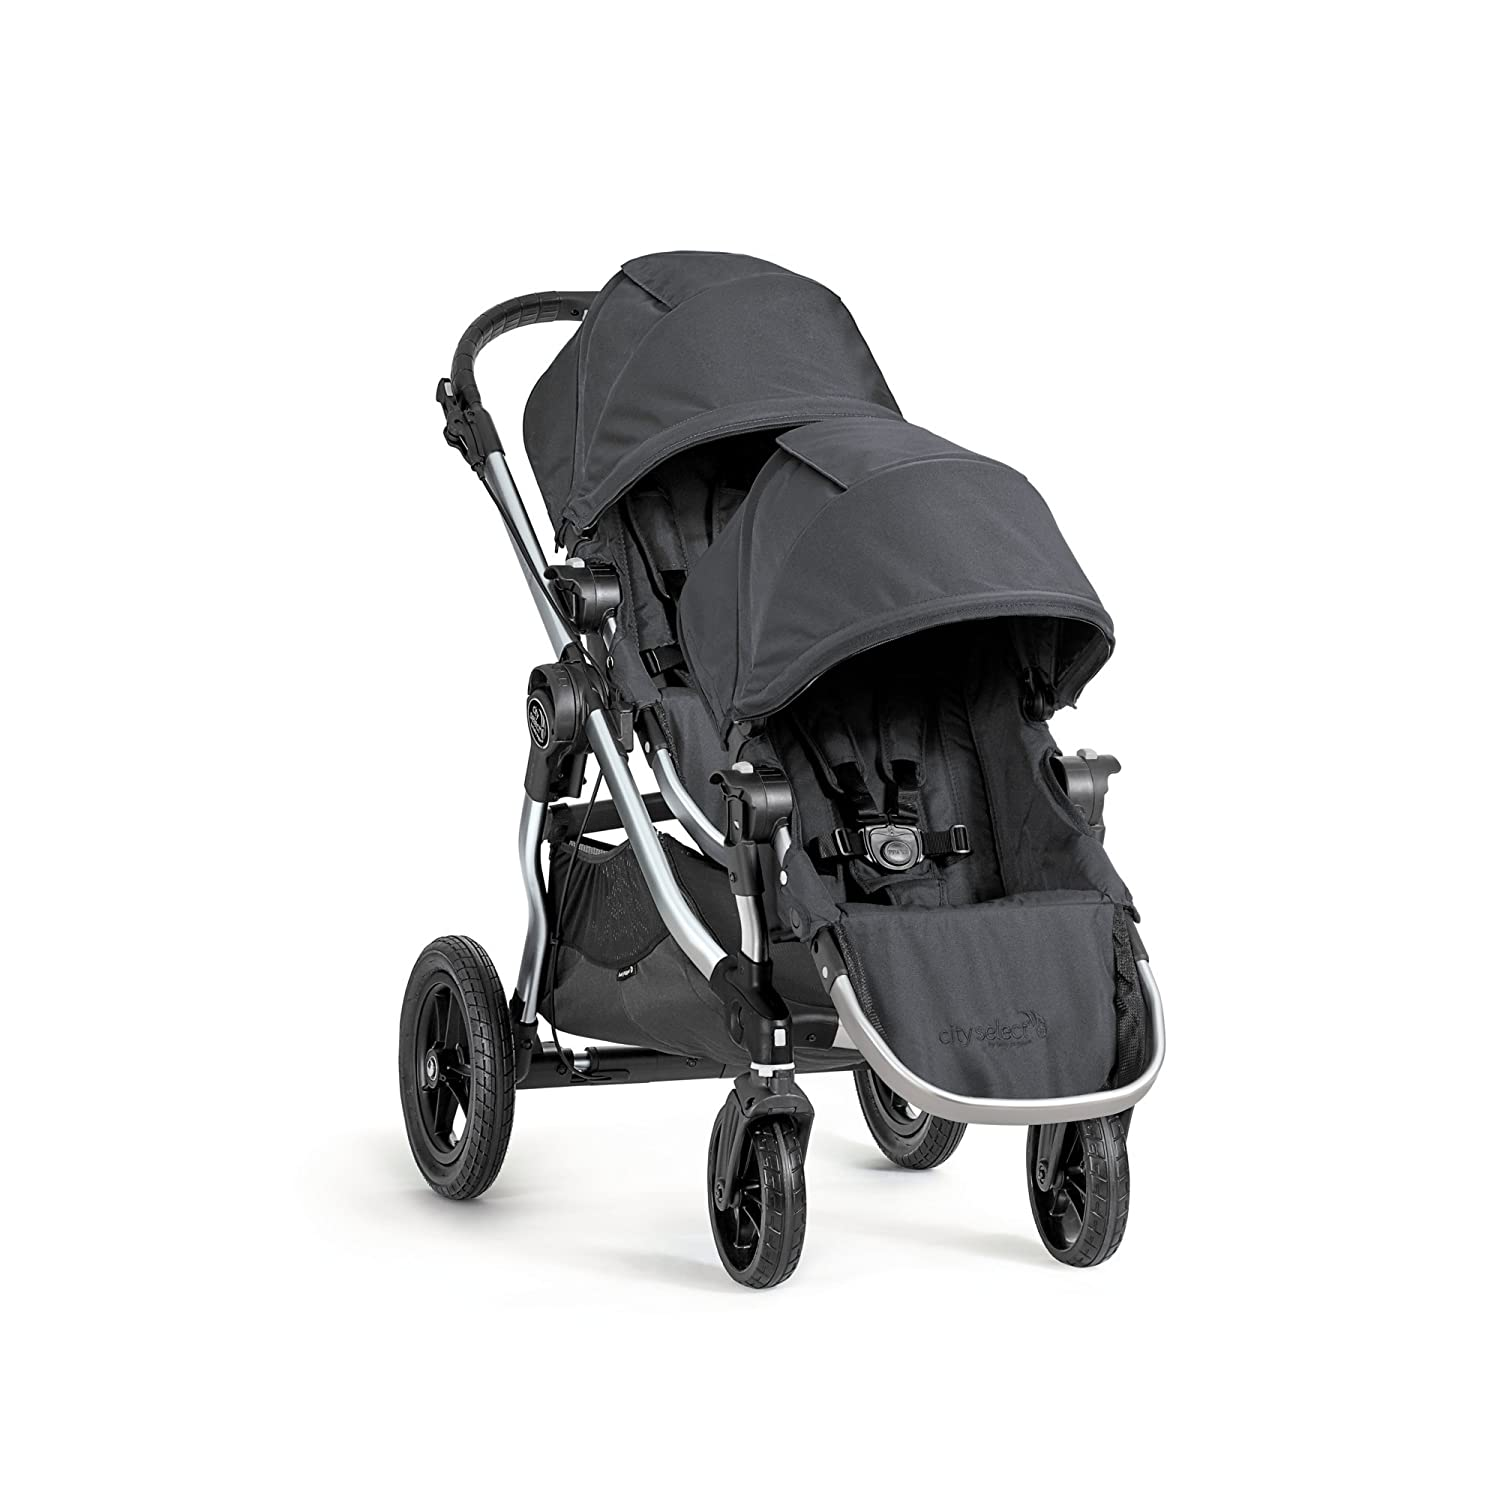 Top 7 Best Tandem Strollers Reviews in 2020 4